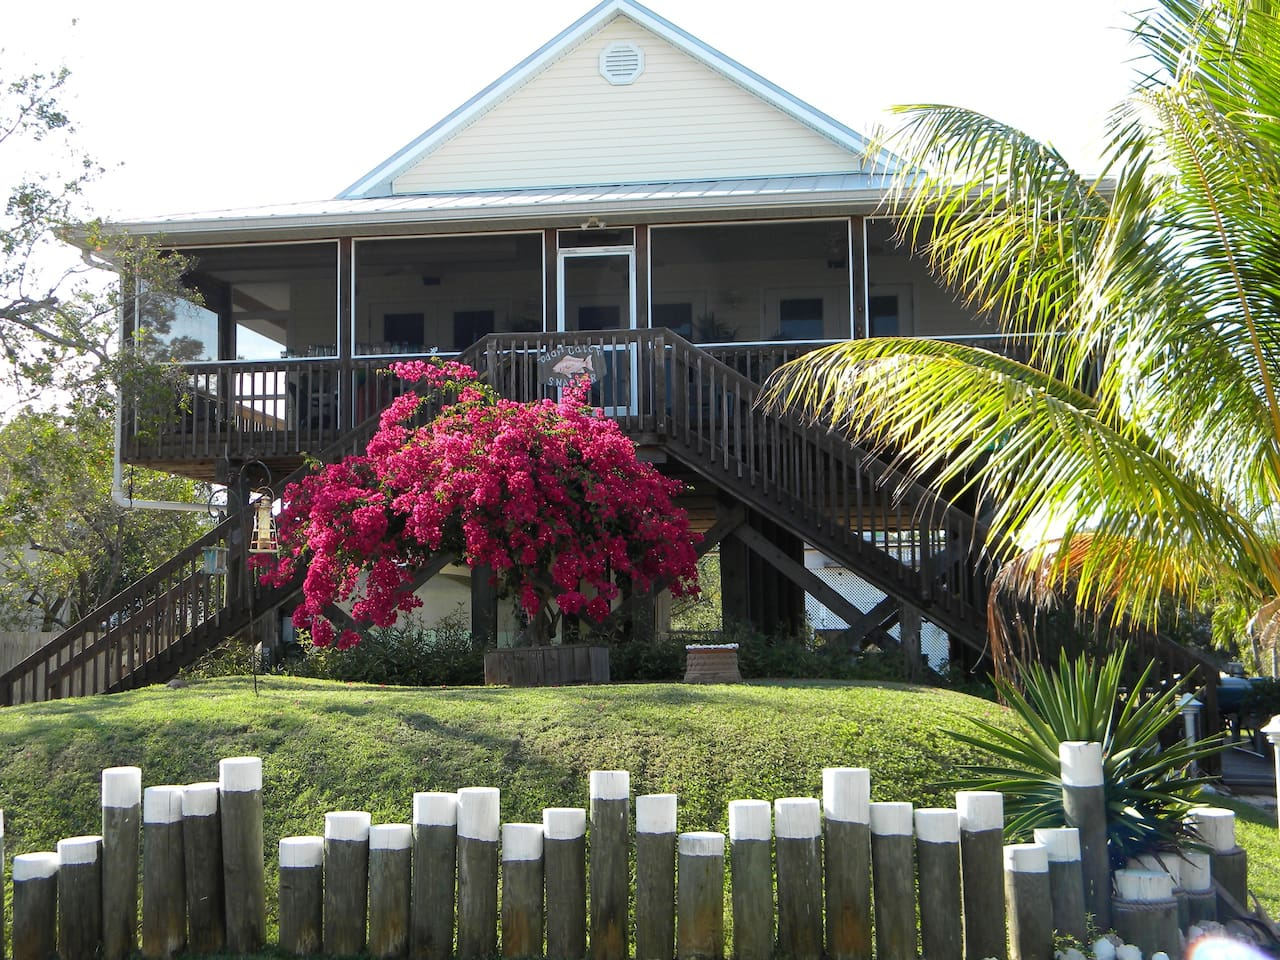 Cottage style home on stilts. large screened in front porch. Great view